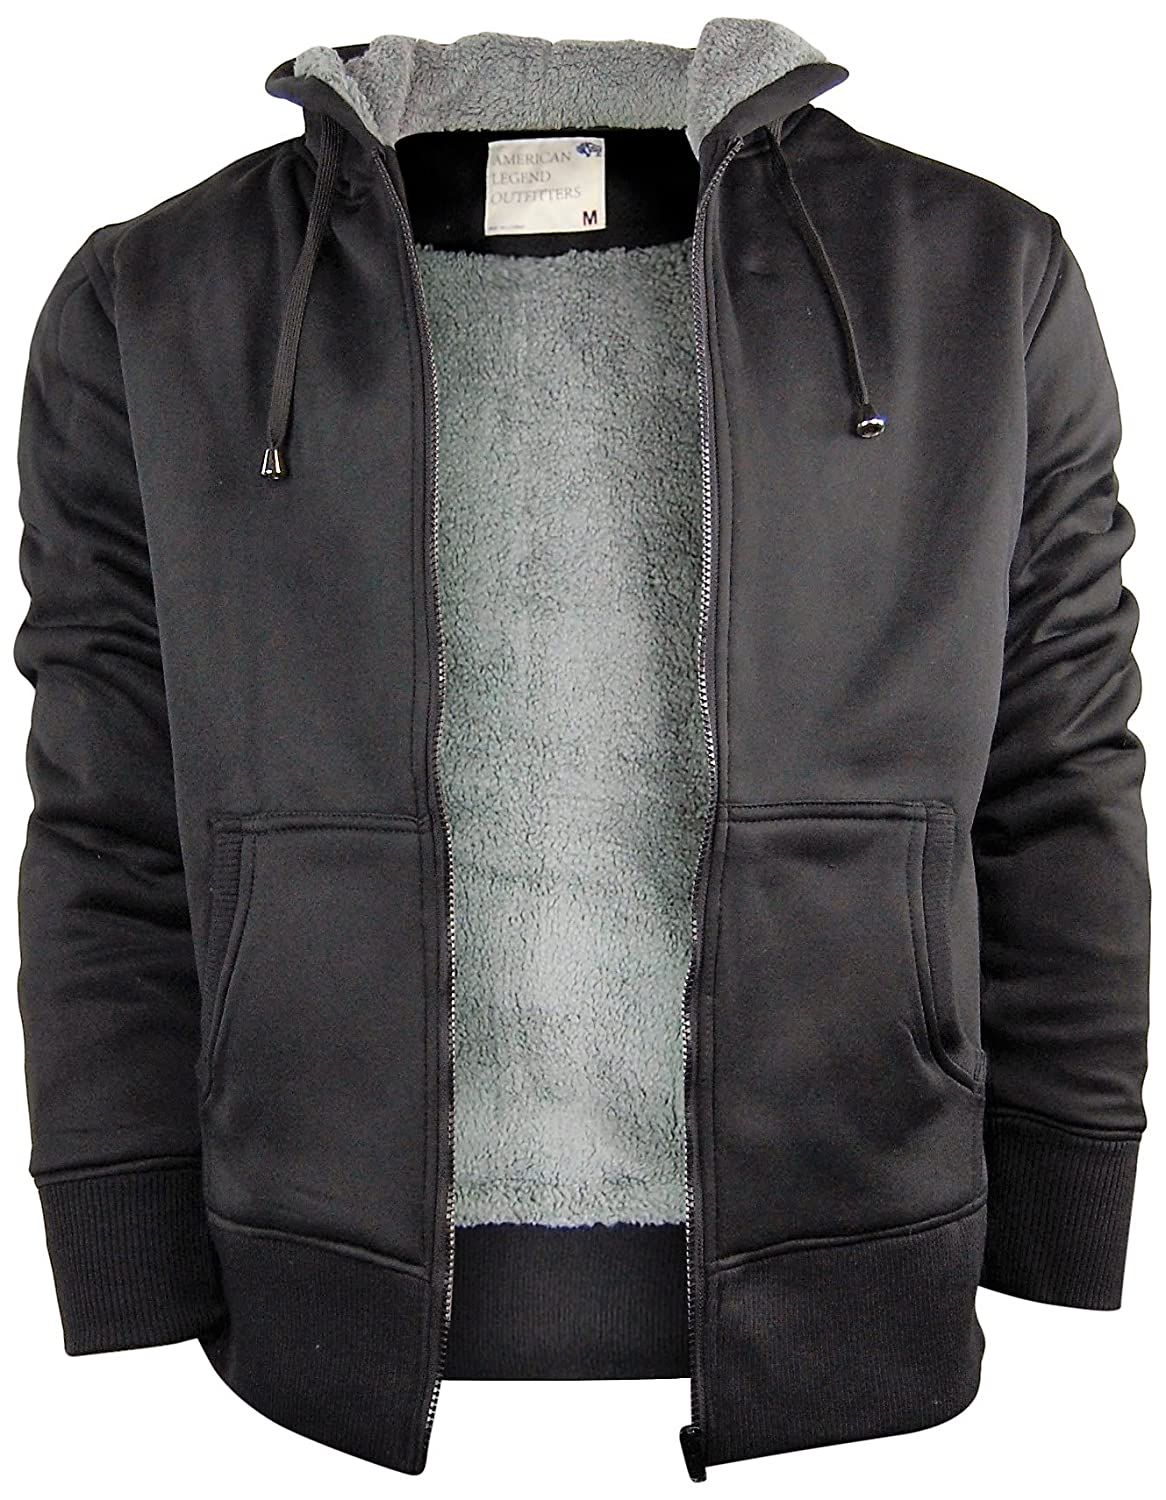 Mens Zip Up Hoodiehooded Jacket With Fleece Lining Soft And Warm Sherpa Lined Large Black